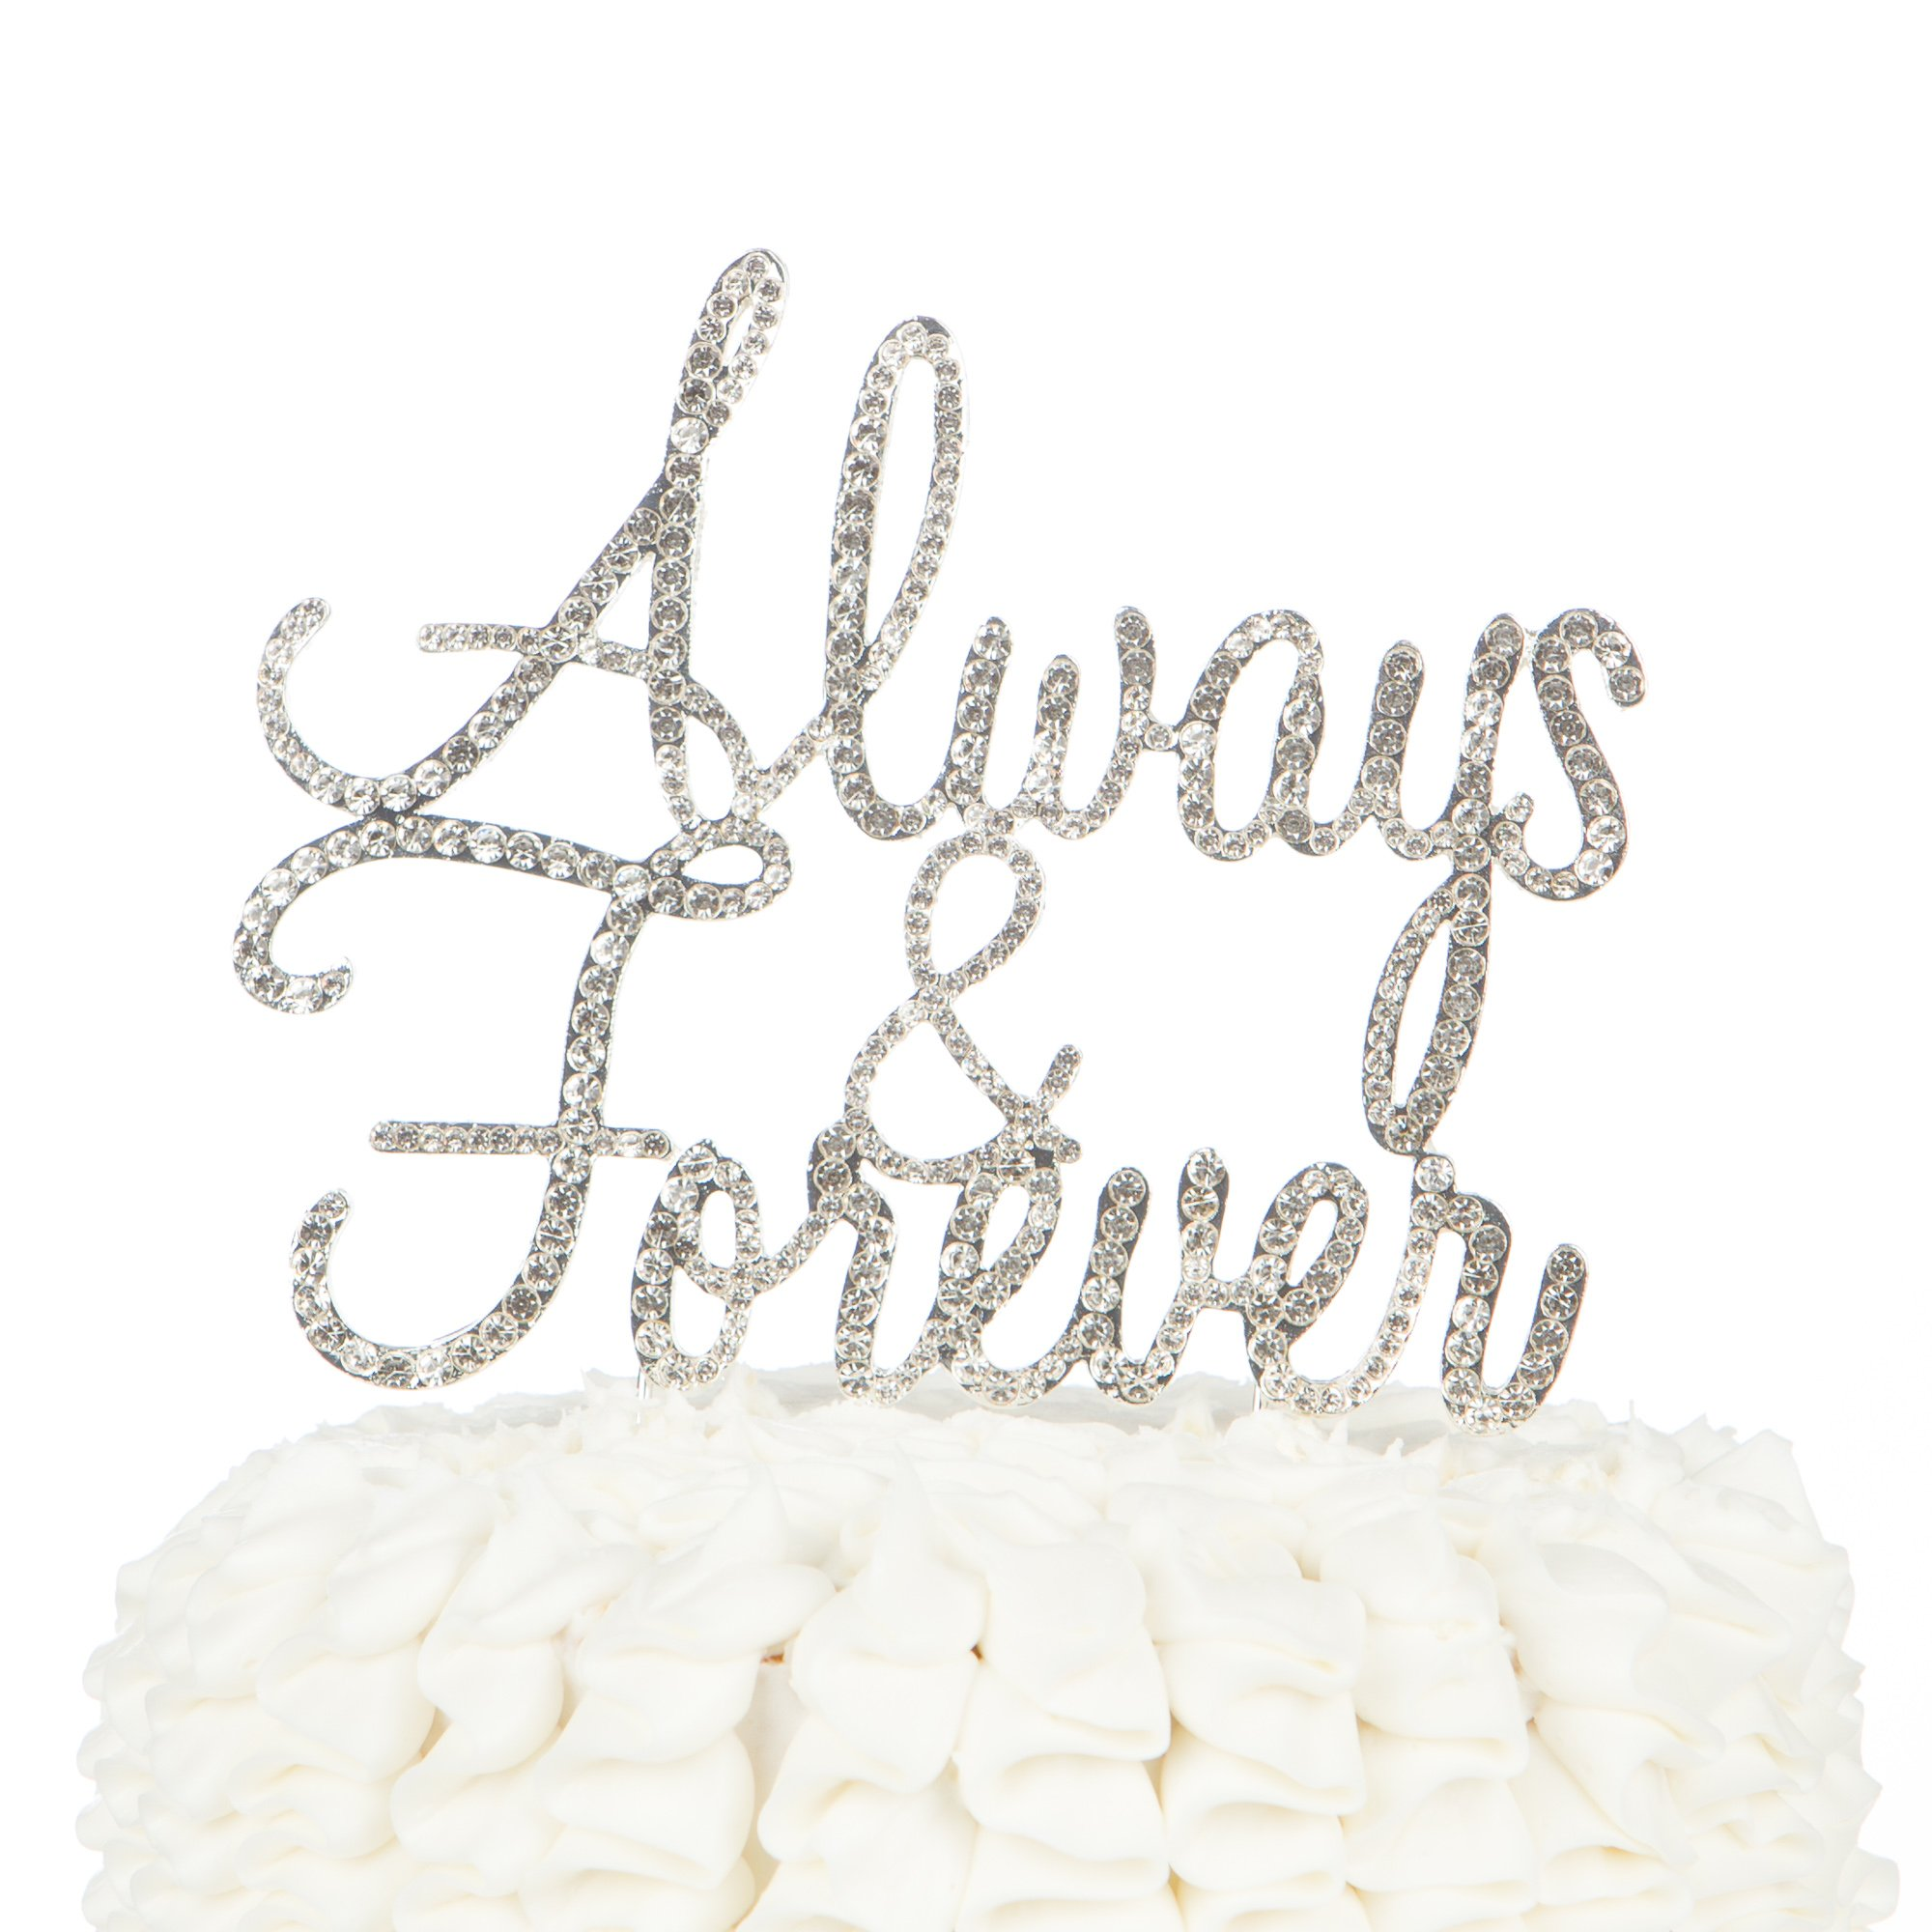 Ella Celebration Always and Forever Wedding Cake Topper, Silver Romantic Rhinestone Decoration (Always & Forever) (Silver) by Ella Celebration (Image #1)